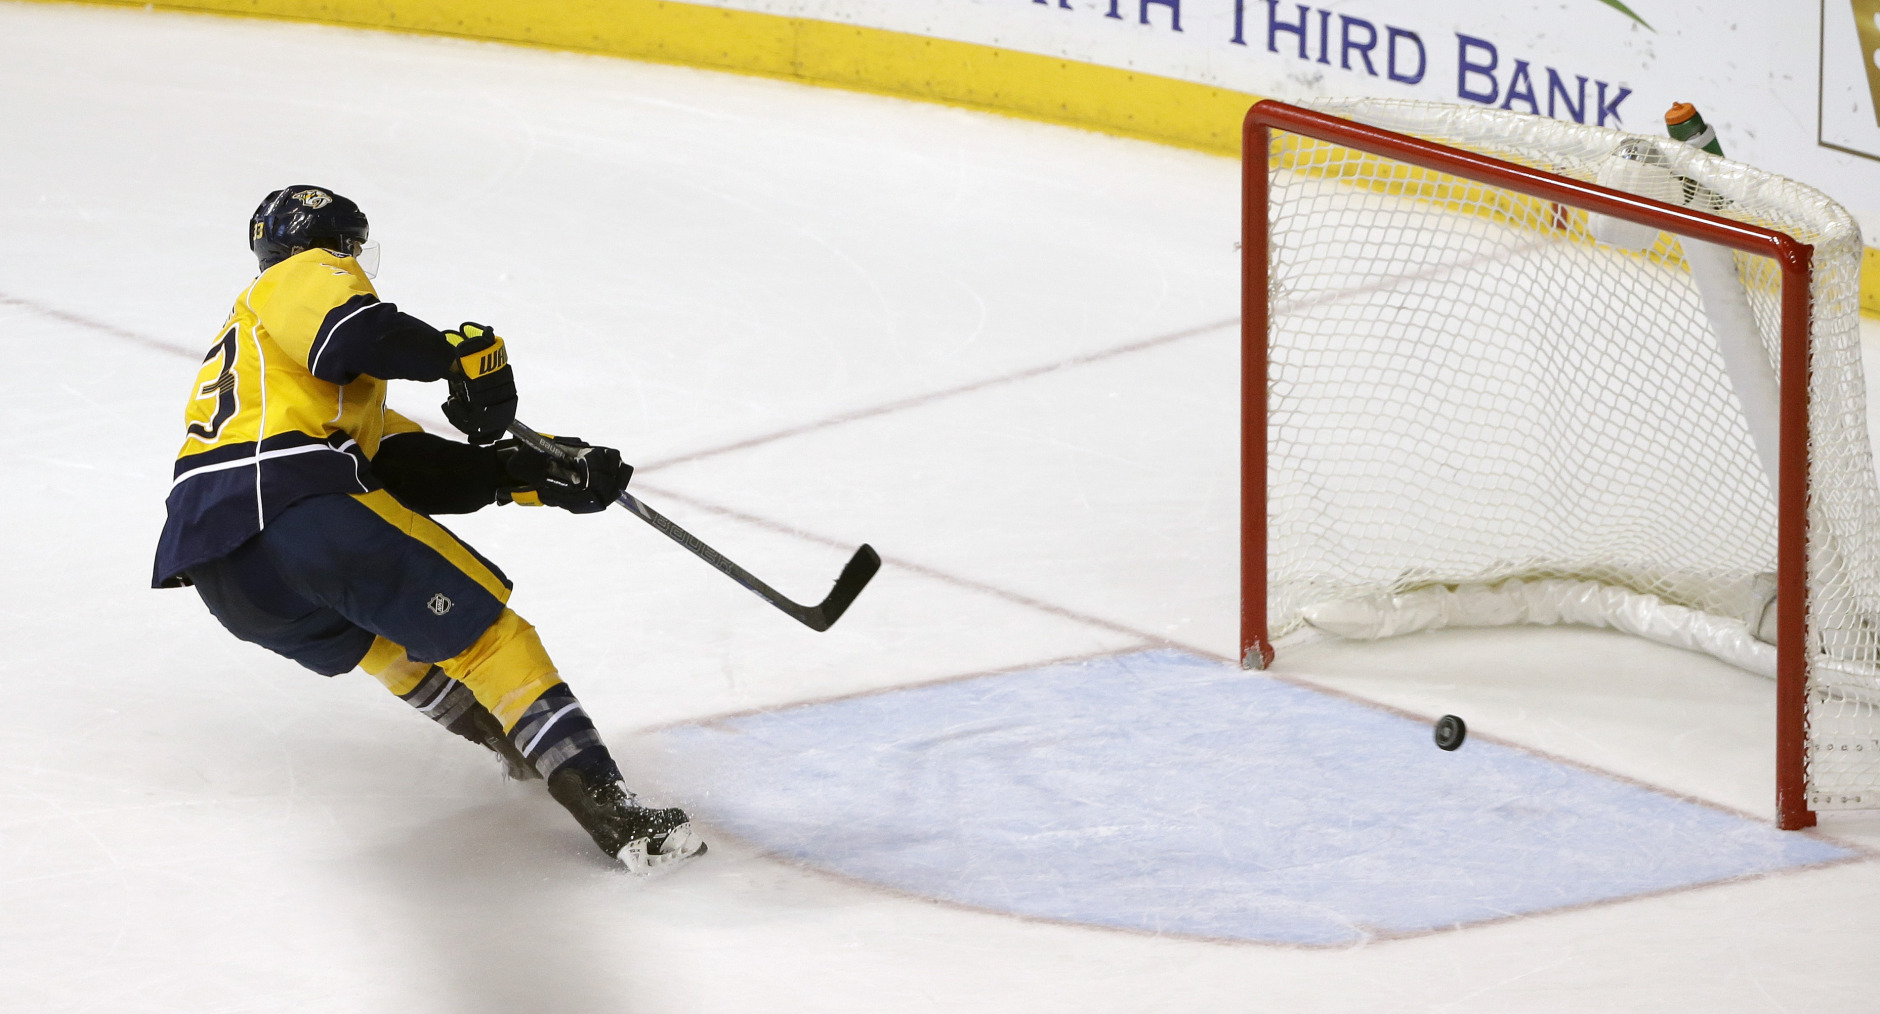 Nashville Predators center Colin Wilson scores an empty net goal against the Philadelphia Flyers in the third period of an NHL hockey game Saturday, Dec. 27, 2014, in Nashville, Tenn. (AP Photo/Mark Humphrey)